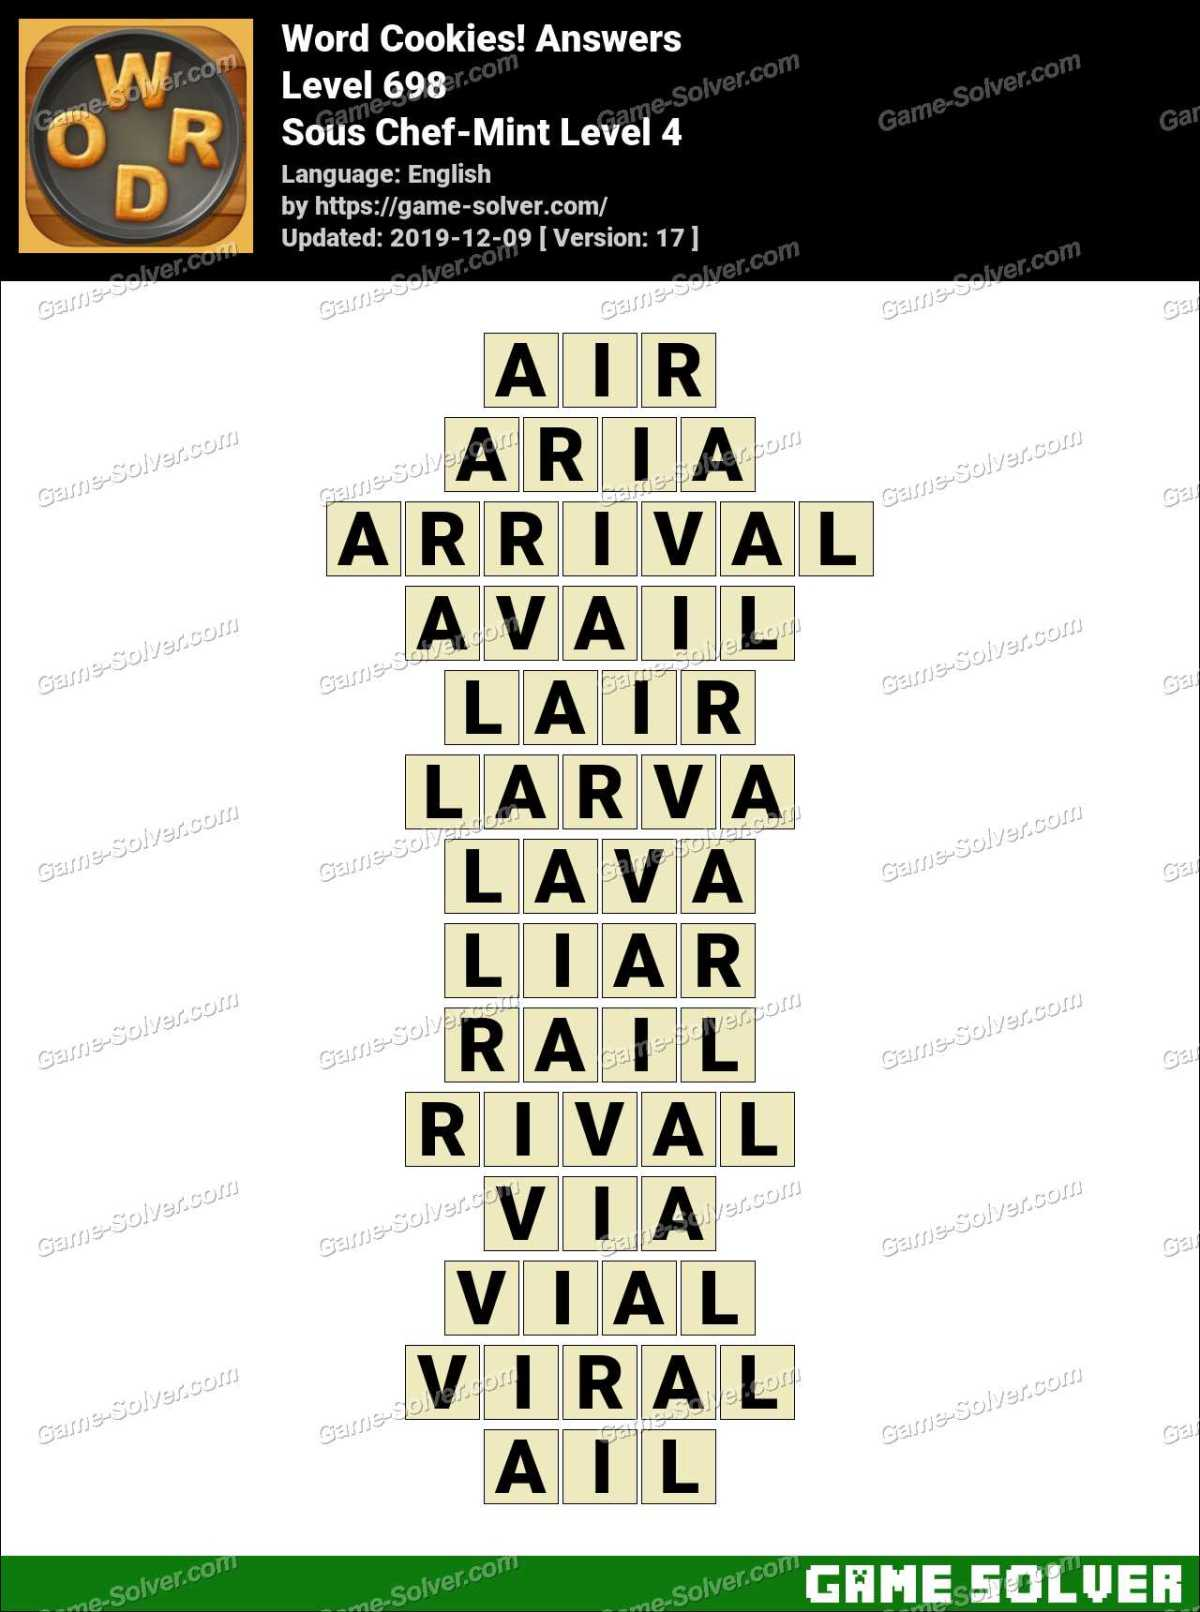 Word Cookies Sous Chef-Mint Level 4 Answers